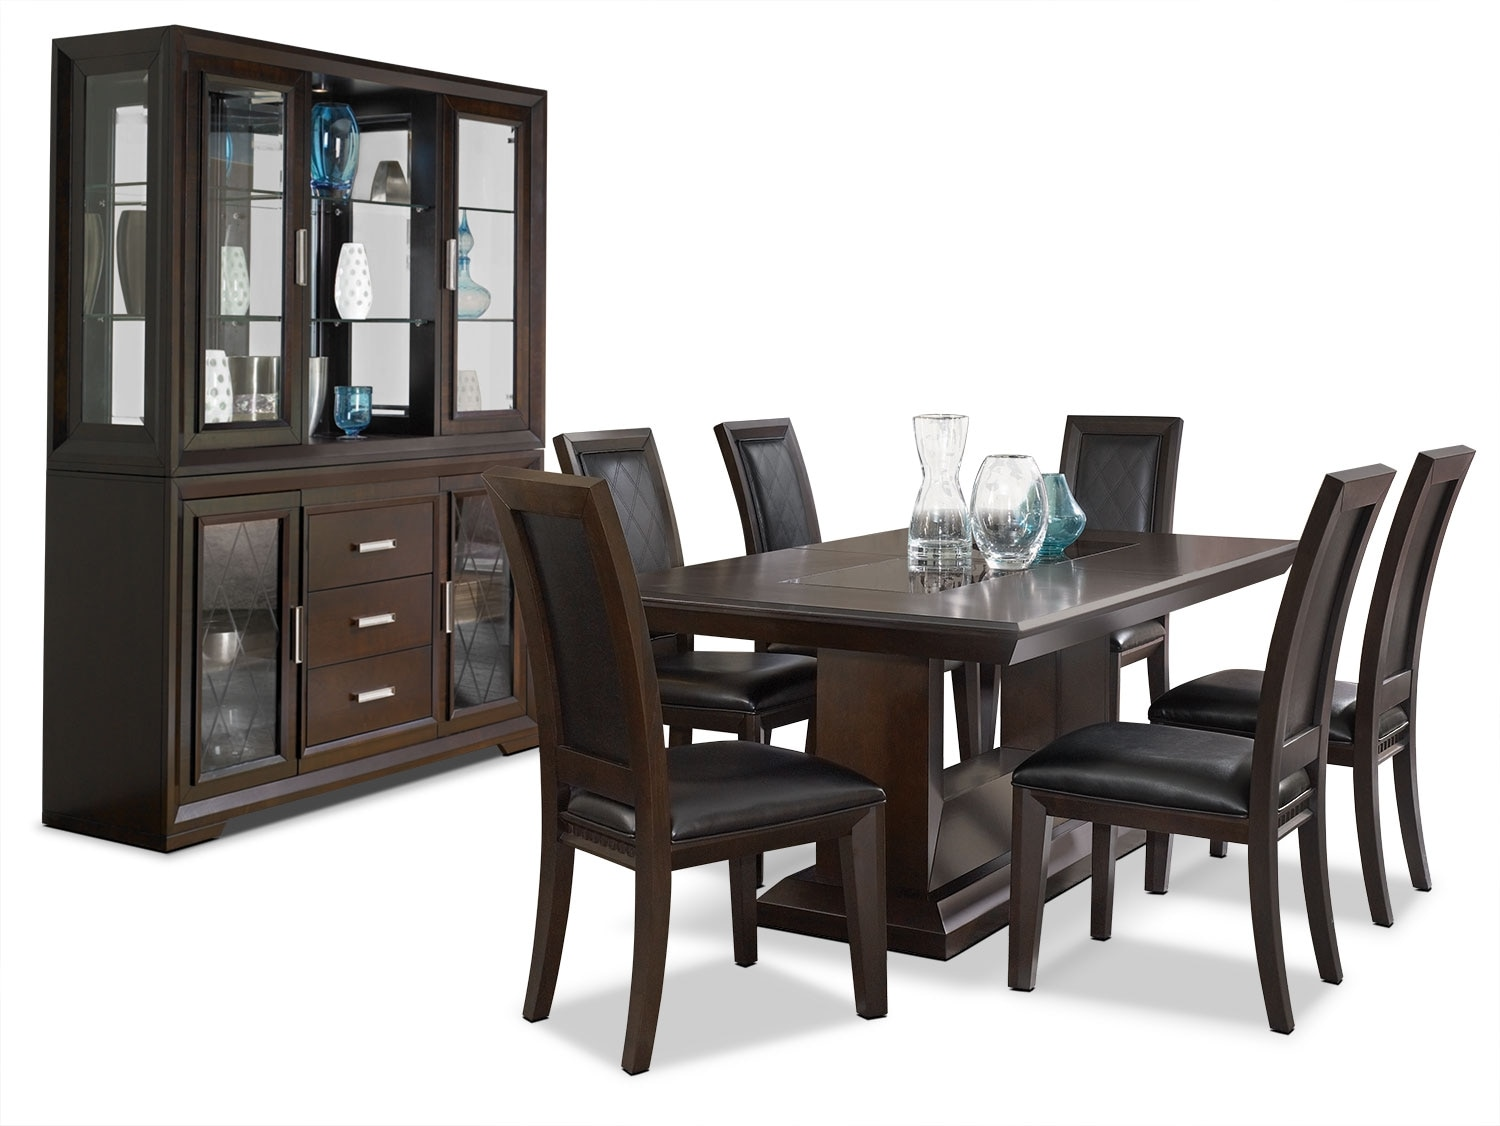 Brentwood 9 Piece Dining Package